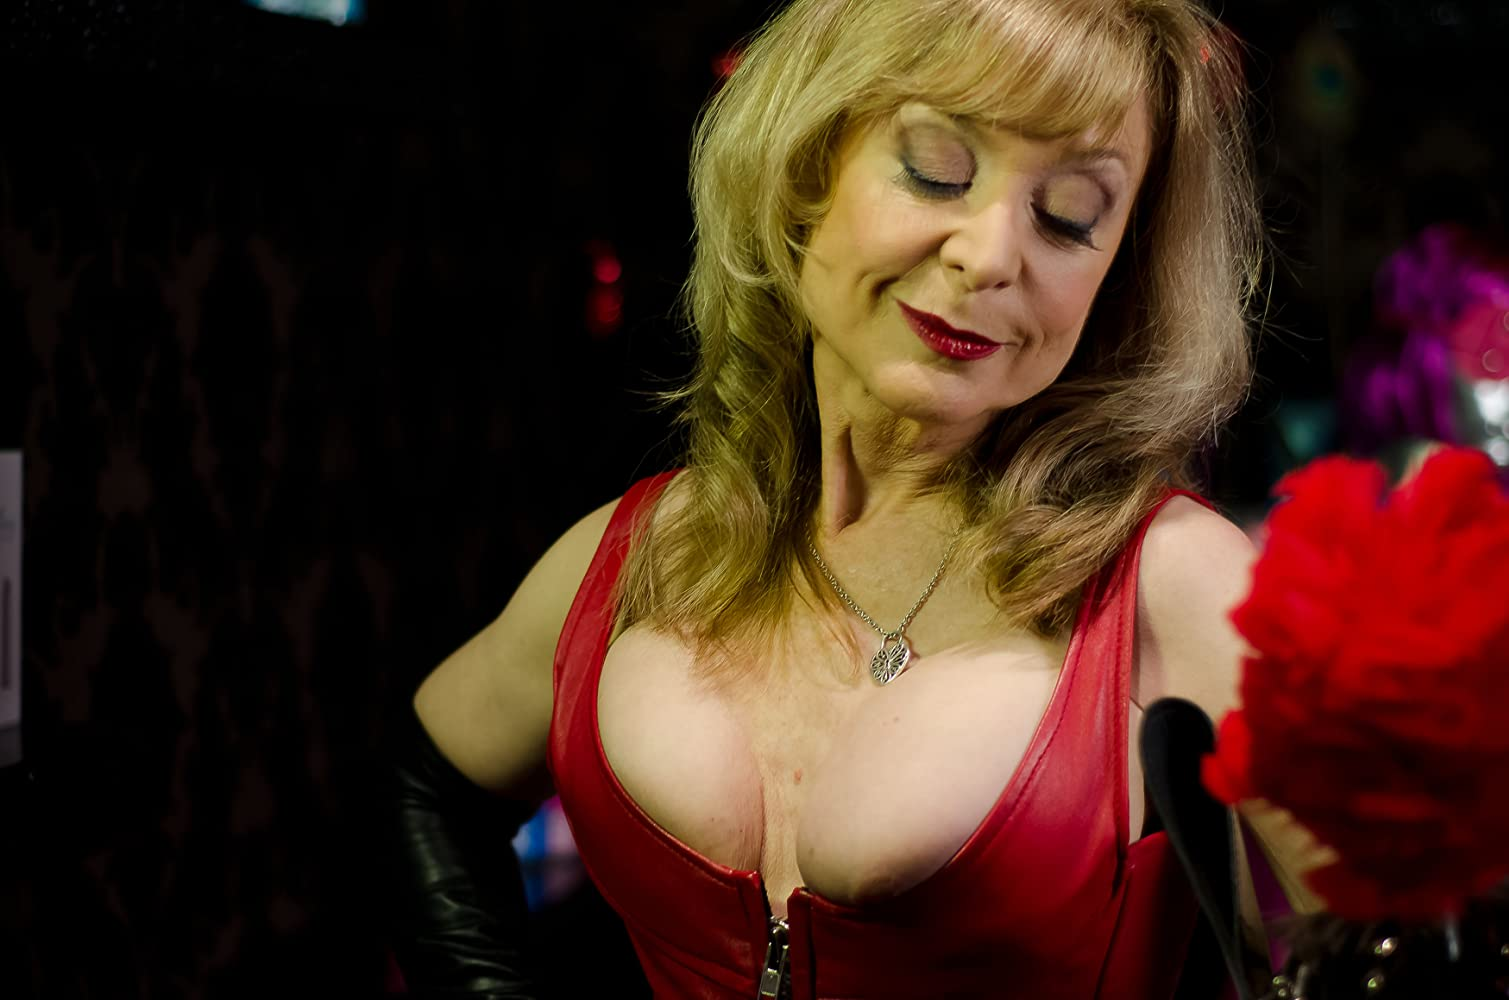 Nina Hartley nude (97 photos) Hacked, Facebook, panties